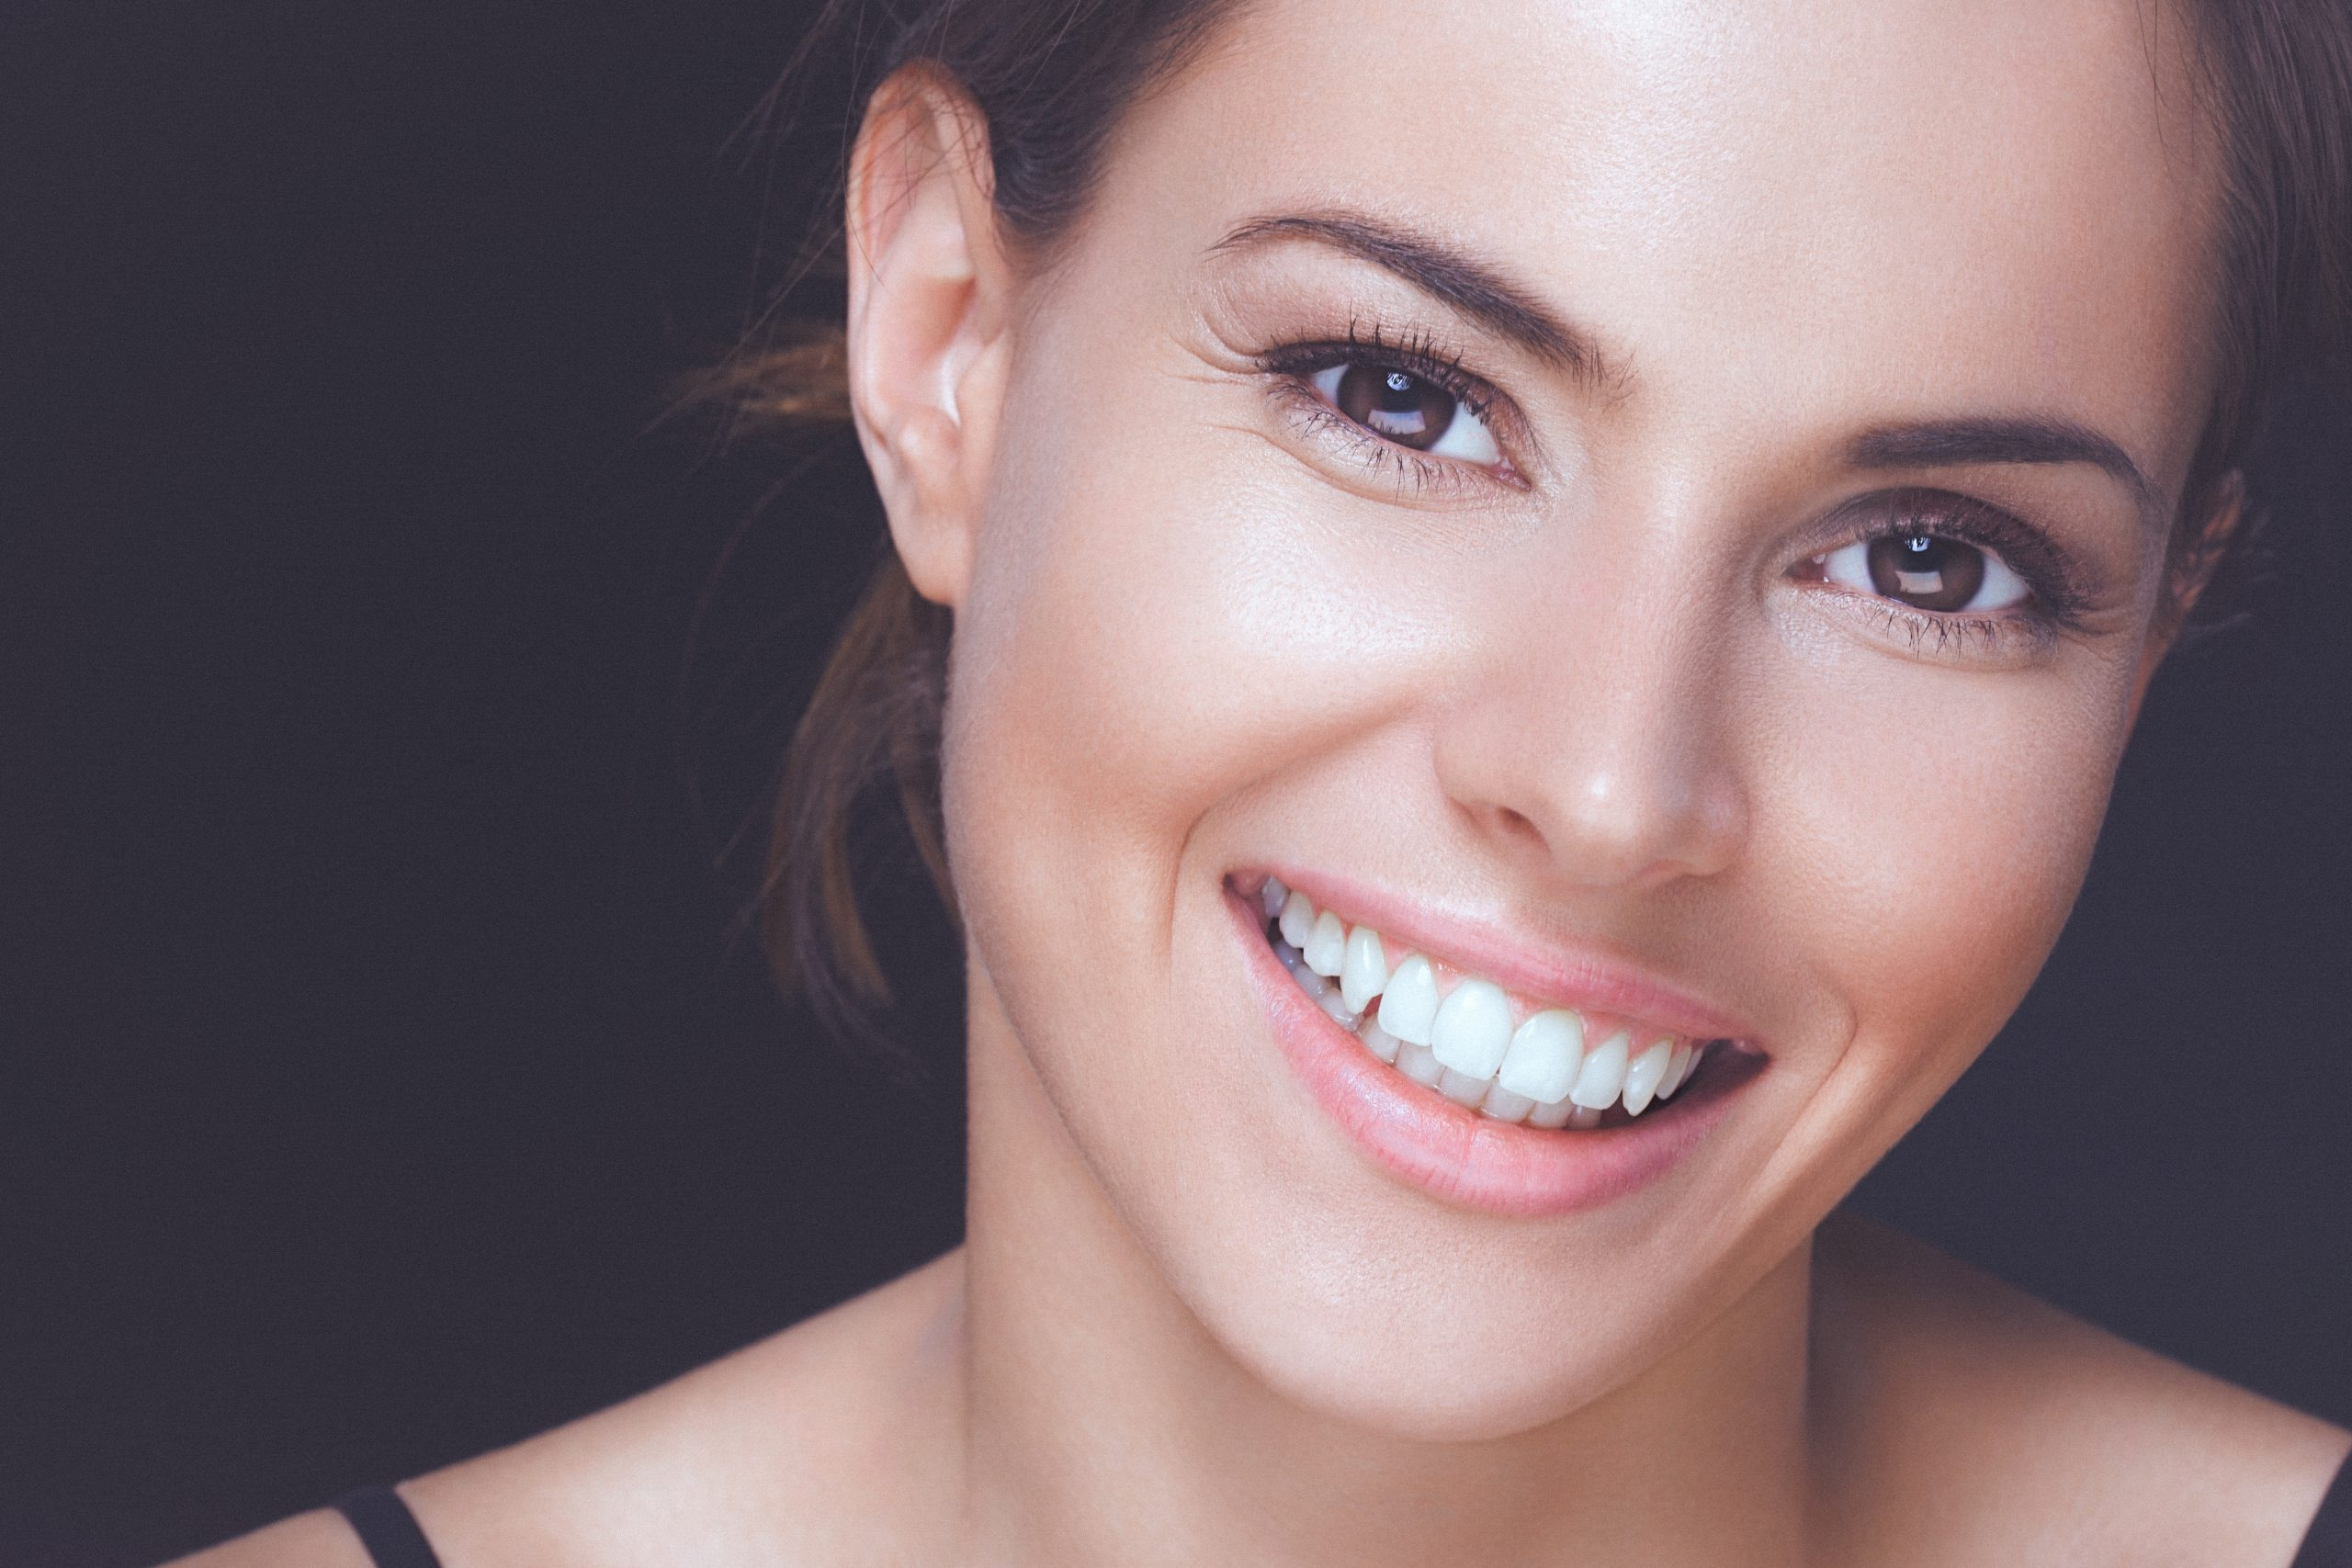 young woman with perfect smile and clean healthy skin